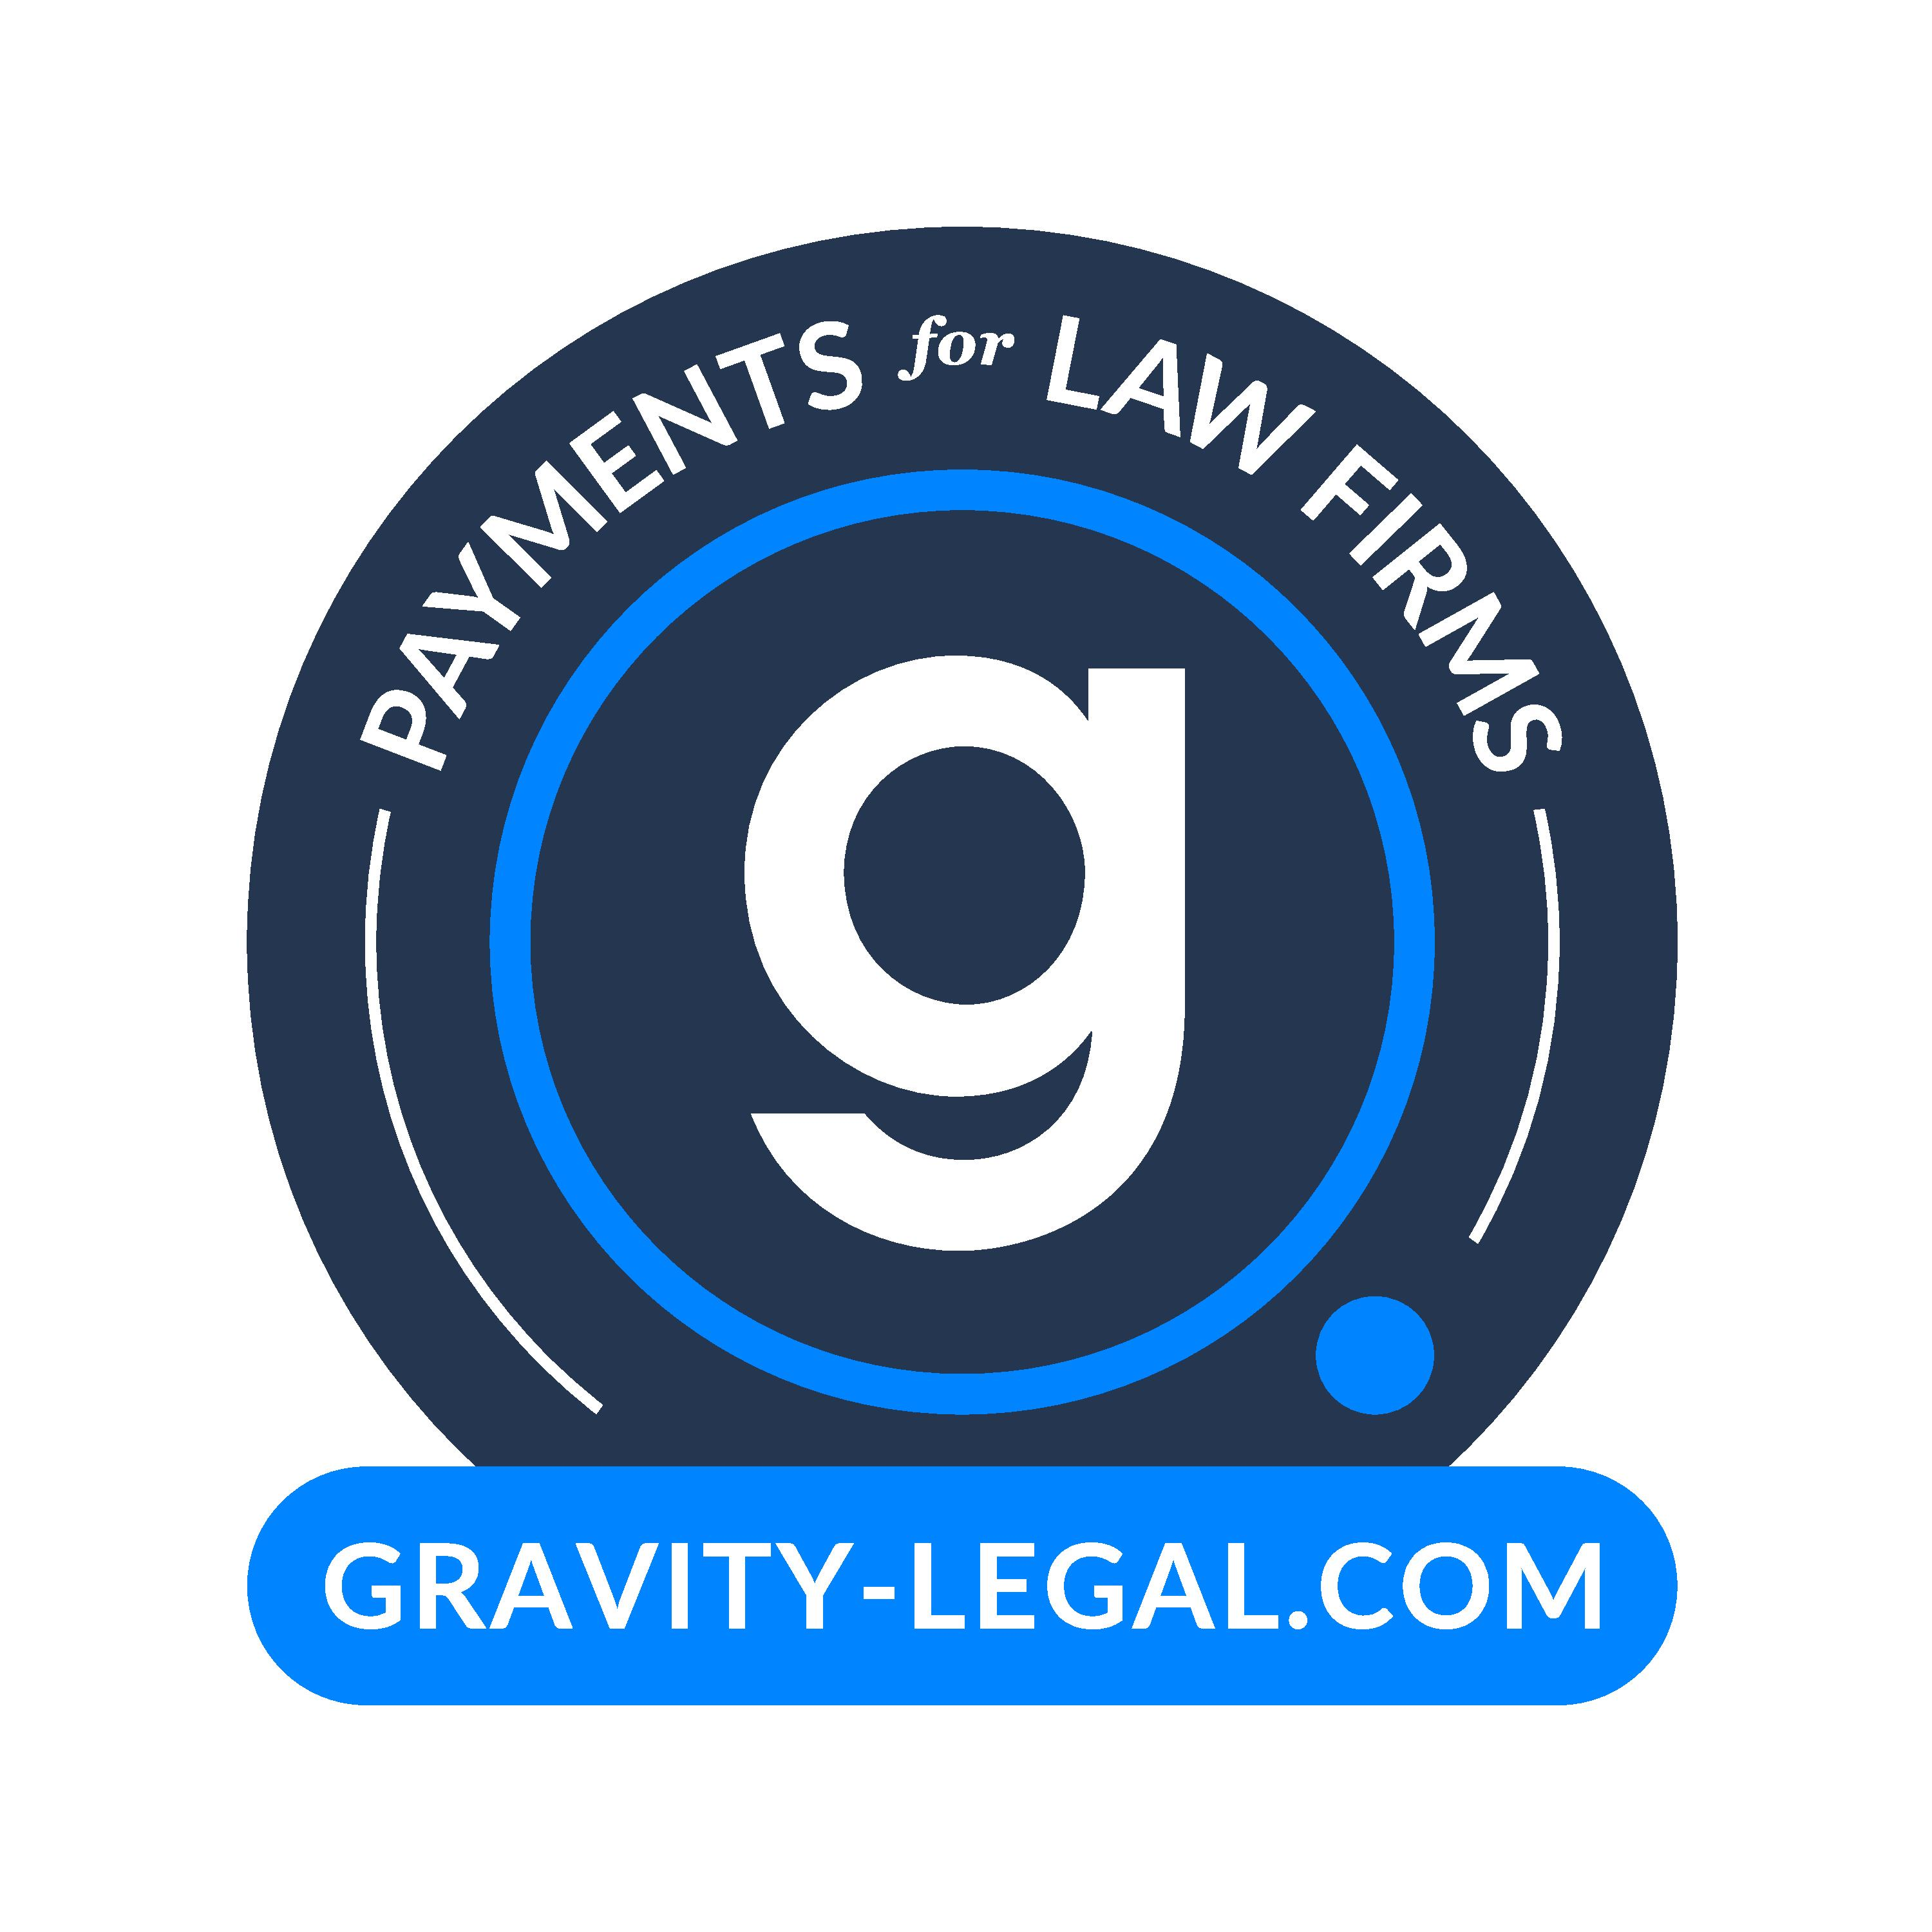 Payments for law firms